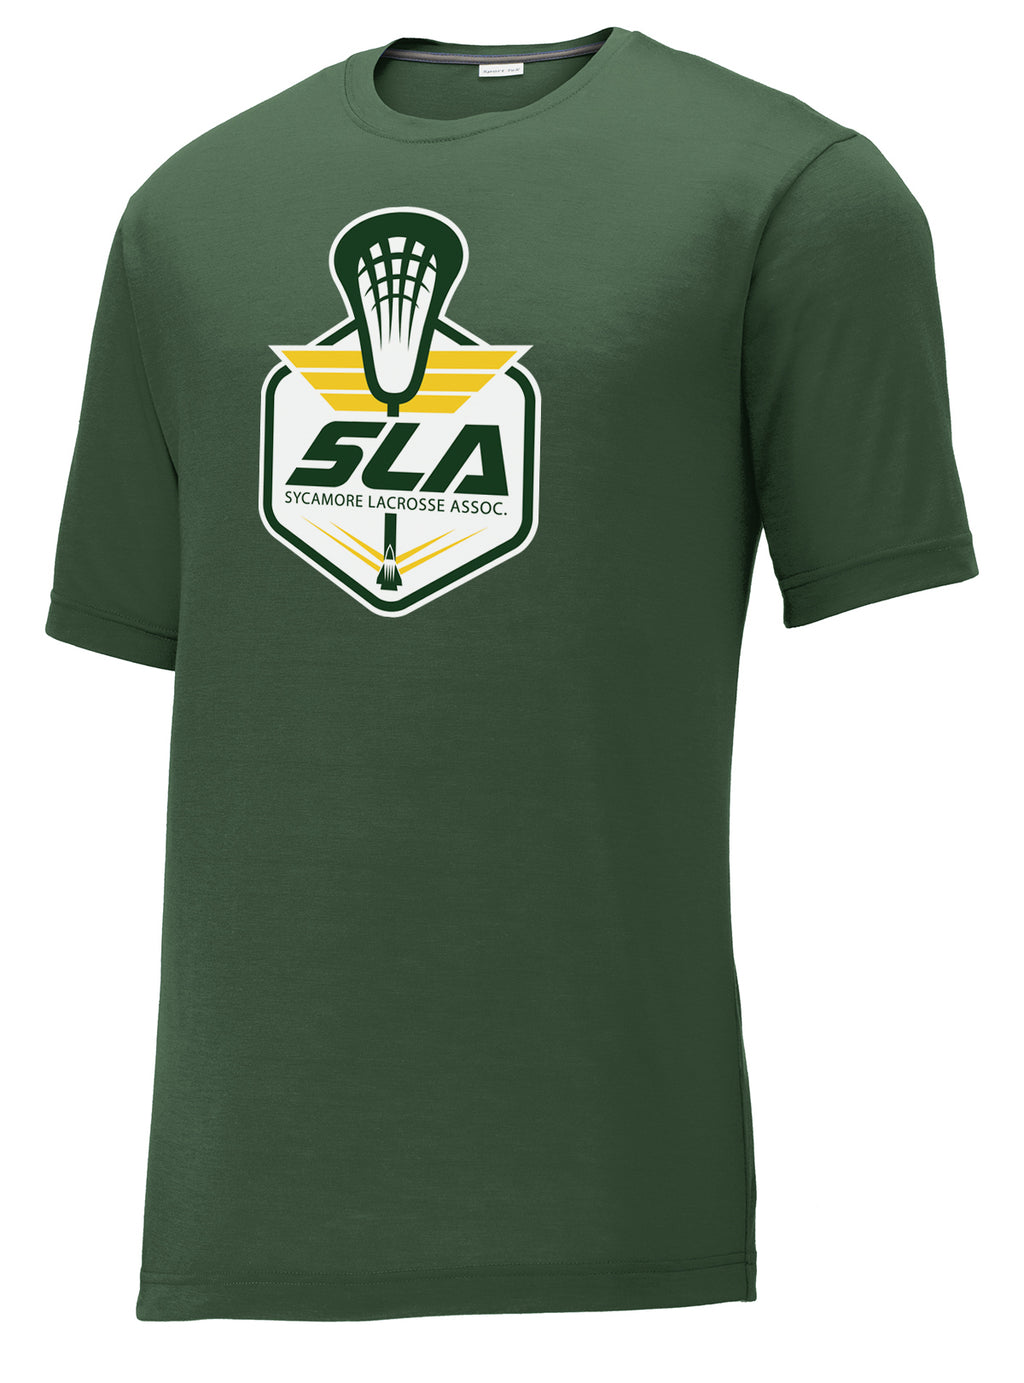 Sycamore Lacrosse Association Green CottonTouch Performance T-Shirt